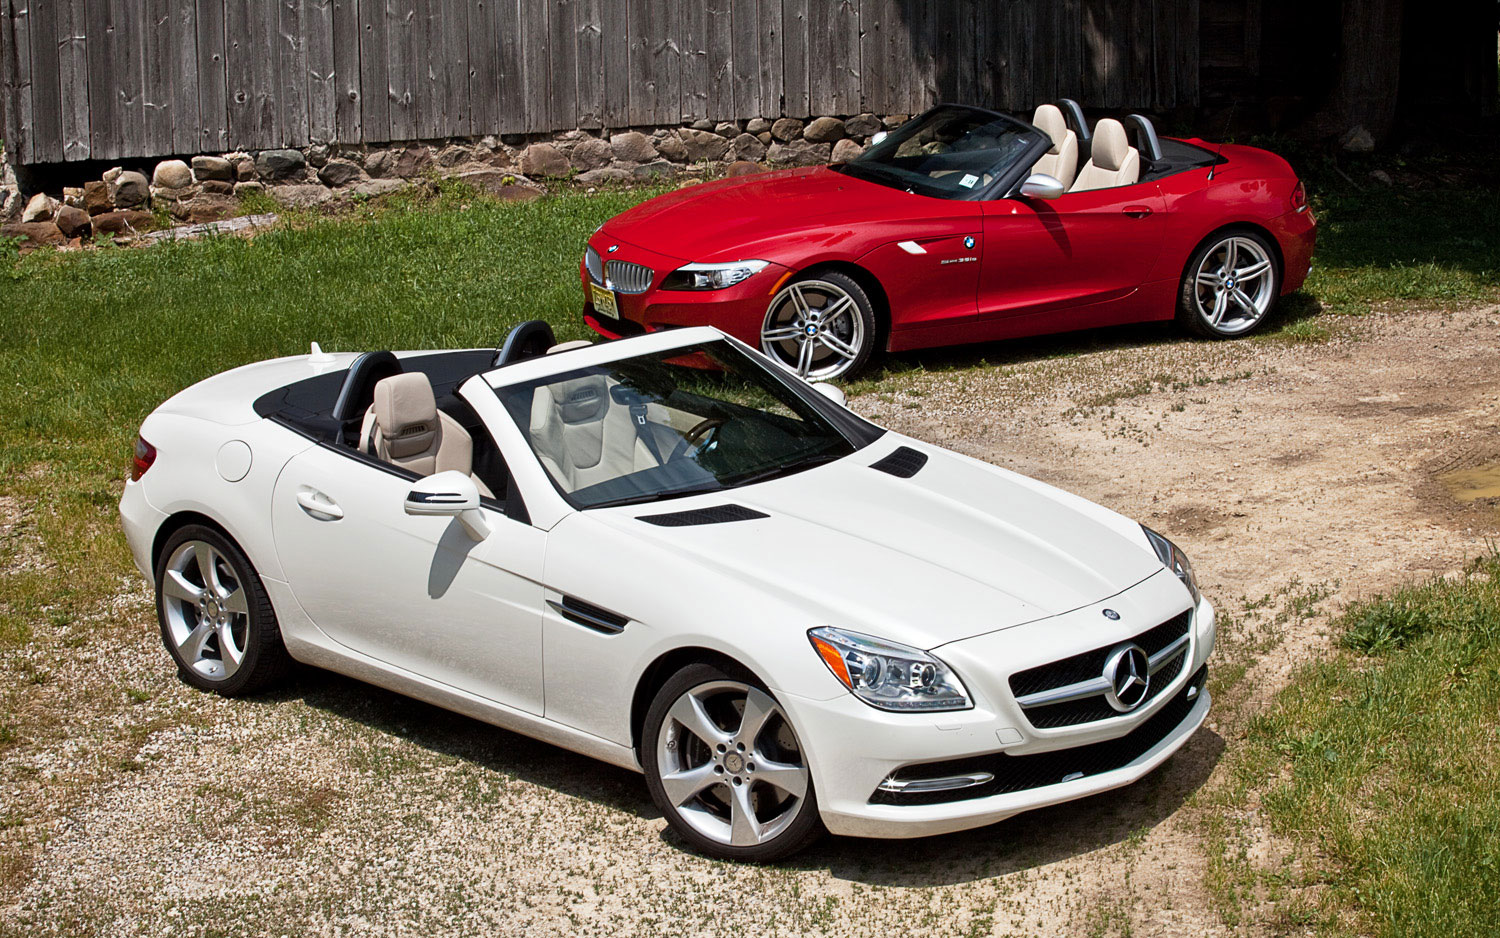 Bmw Z4 Sdrive35is Vs Mercedes Benz Slk350 Comparison Automobile Magazine